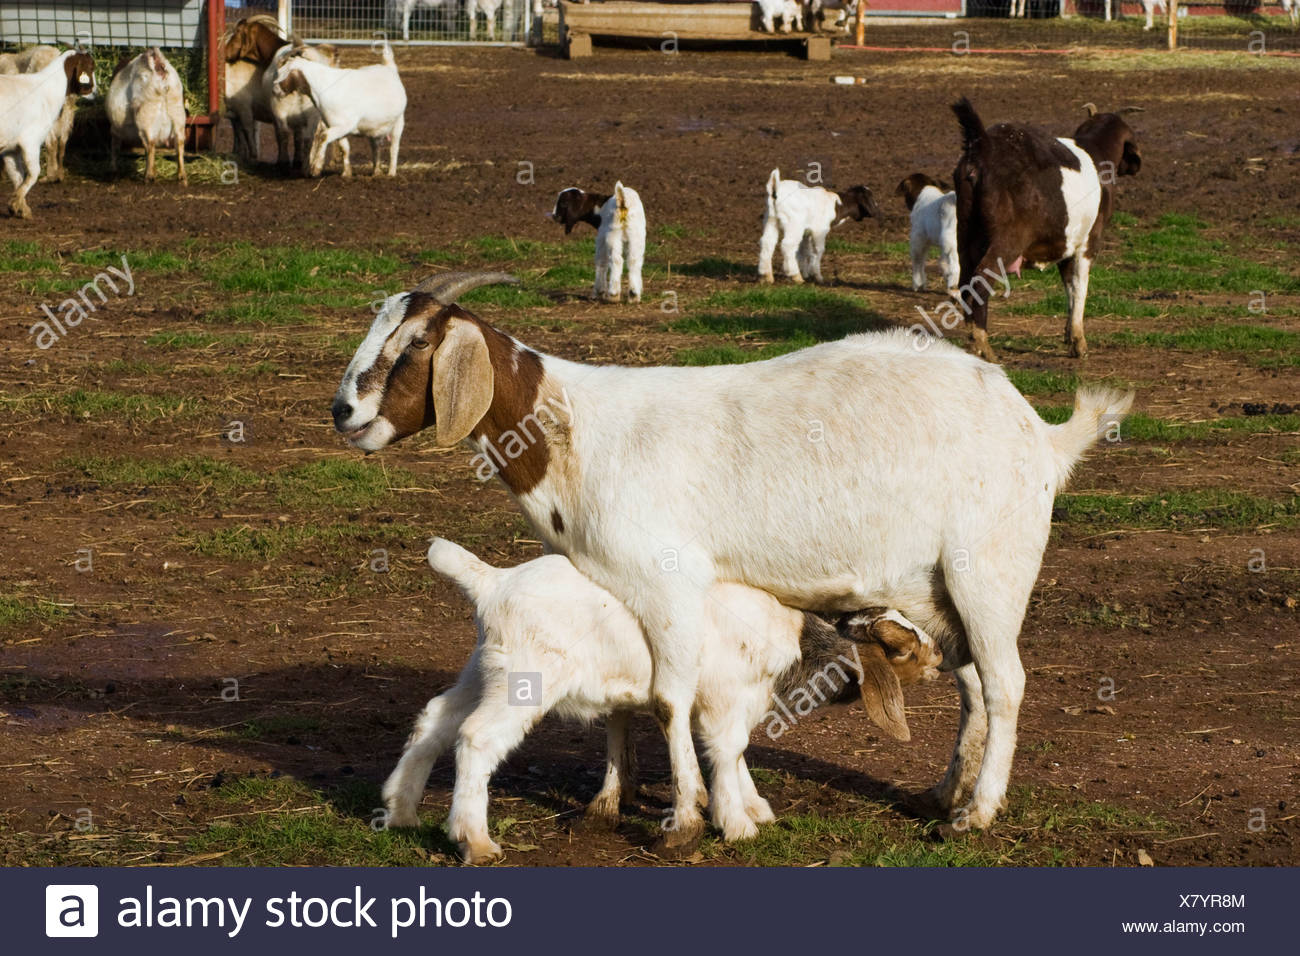 Livestock - A kid goat nurses from it's mother on a goat farm / near Corning, California, USA. - Stock Image